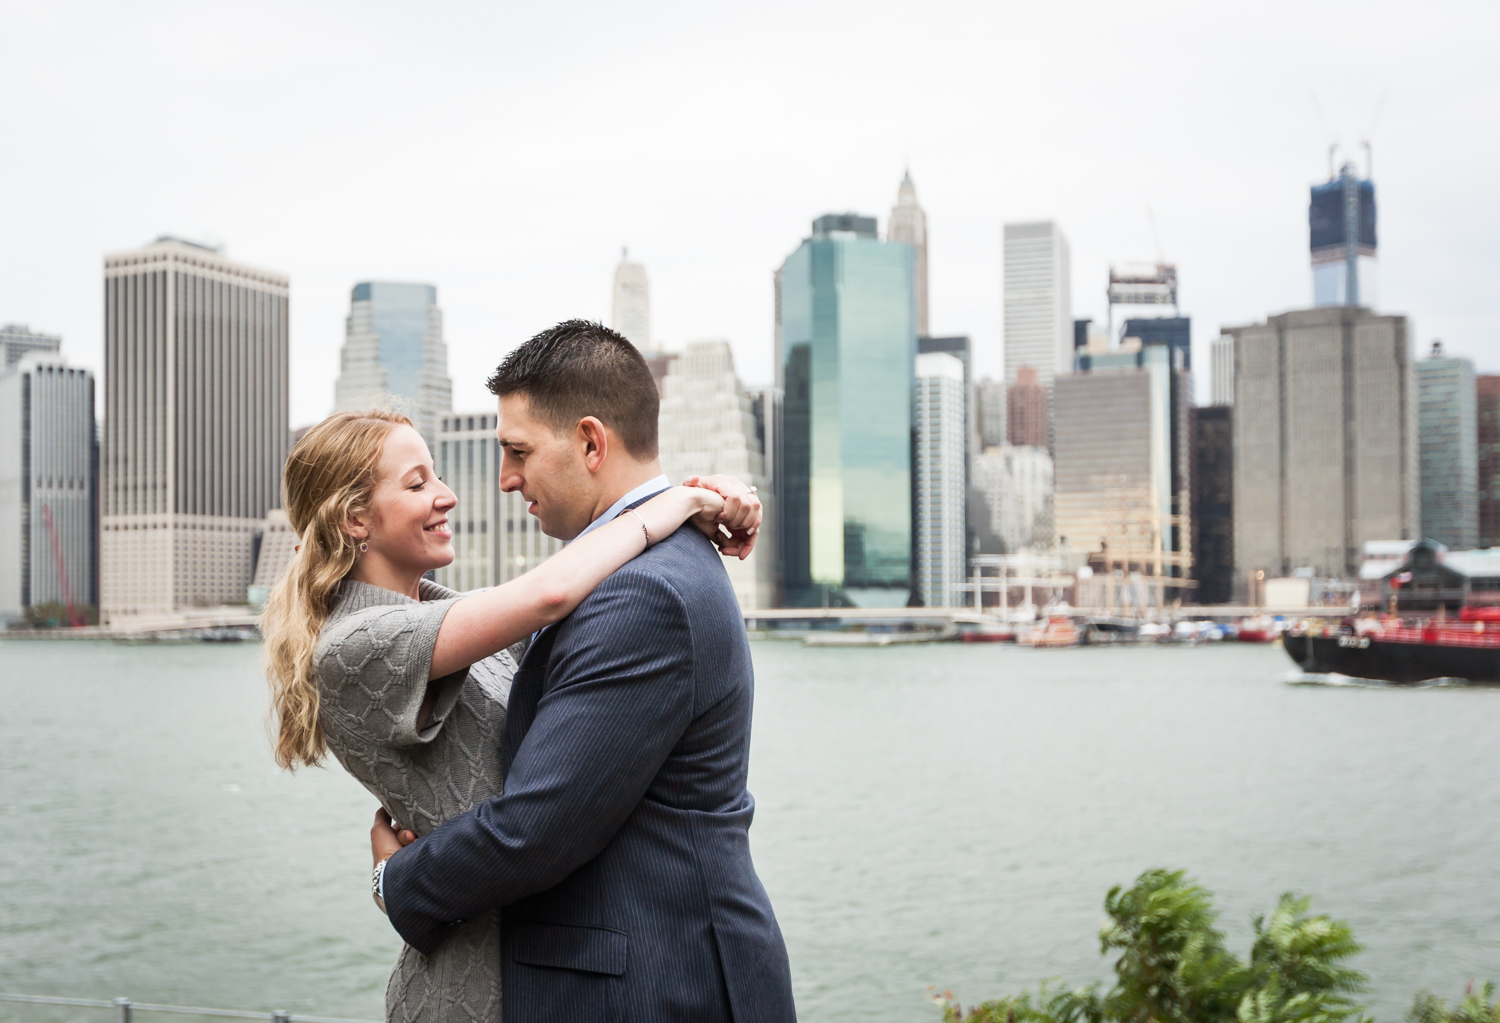 Couple looking at each other with NYC skyline in background